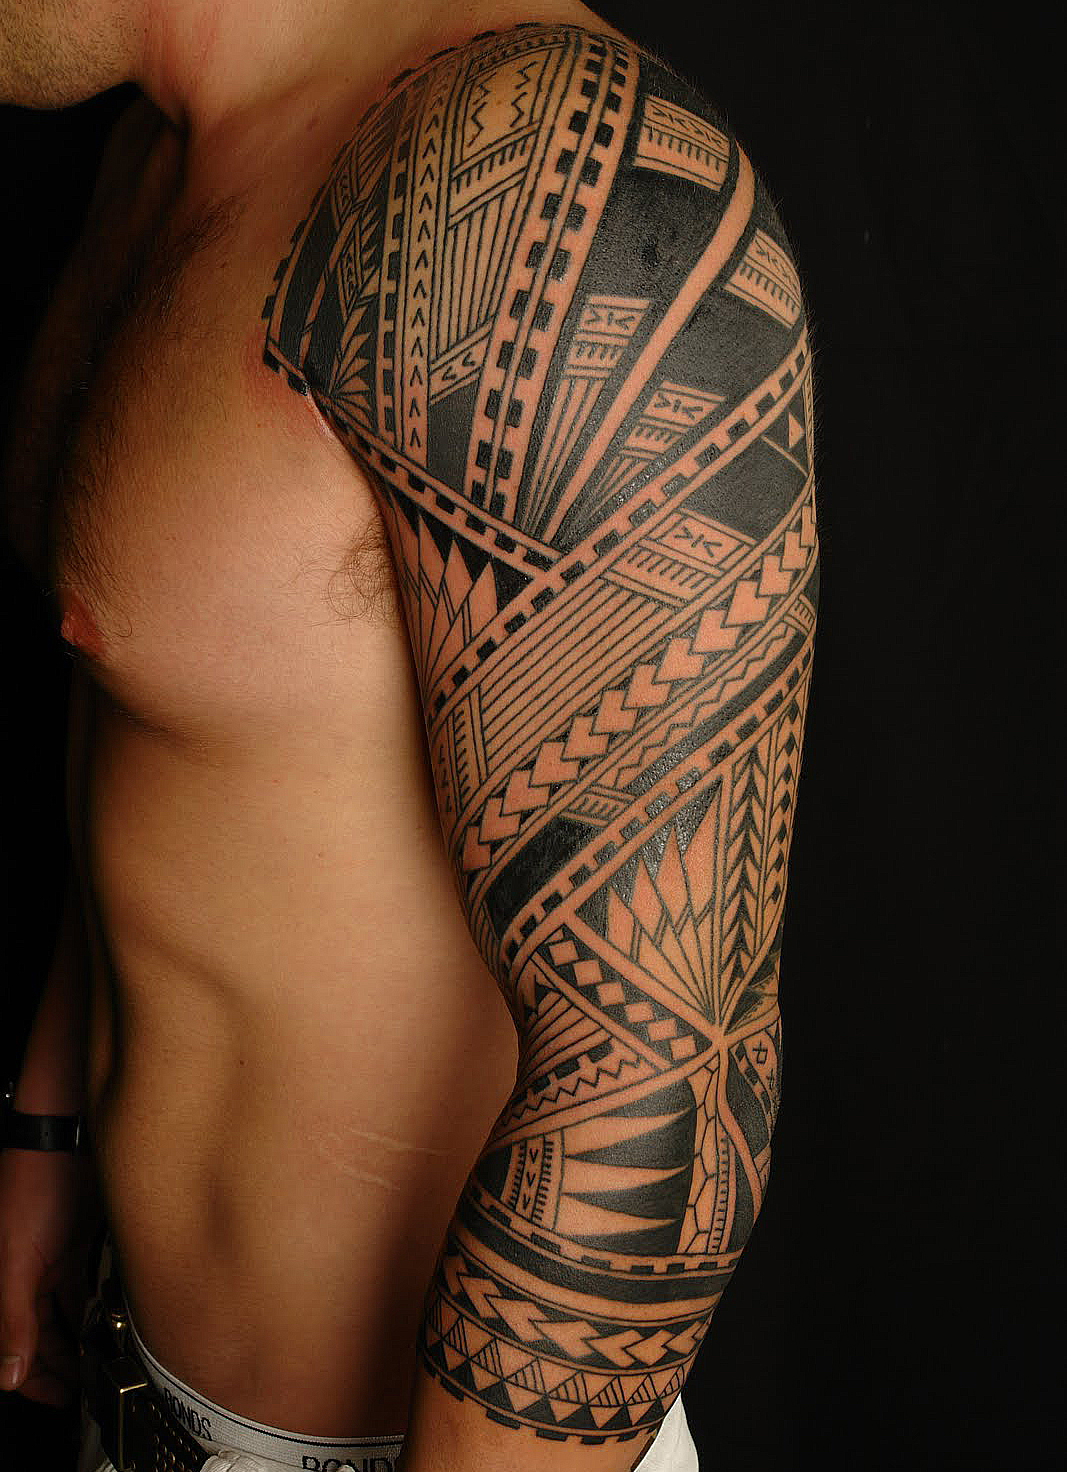 Tatouages polynésiens - Samoa, Hawaii, Tiki Tattoo Designs Maoris